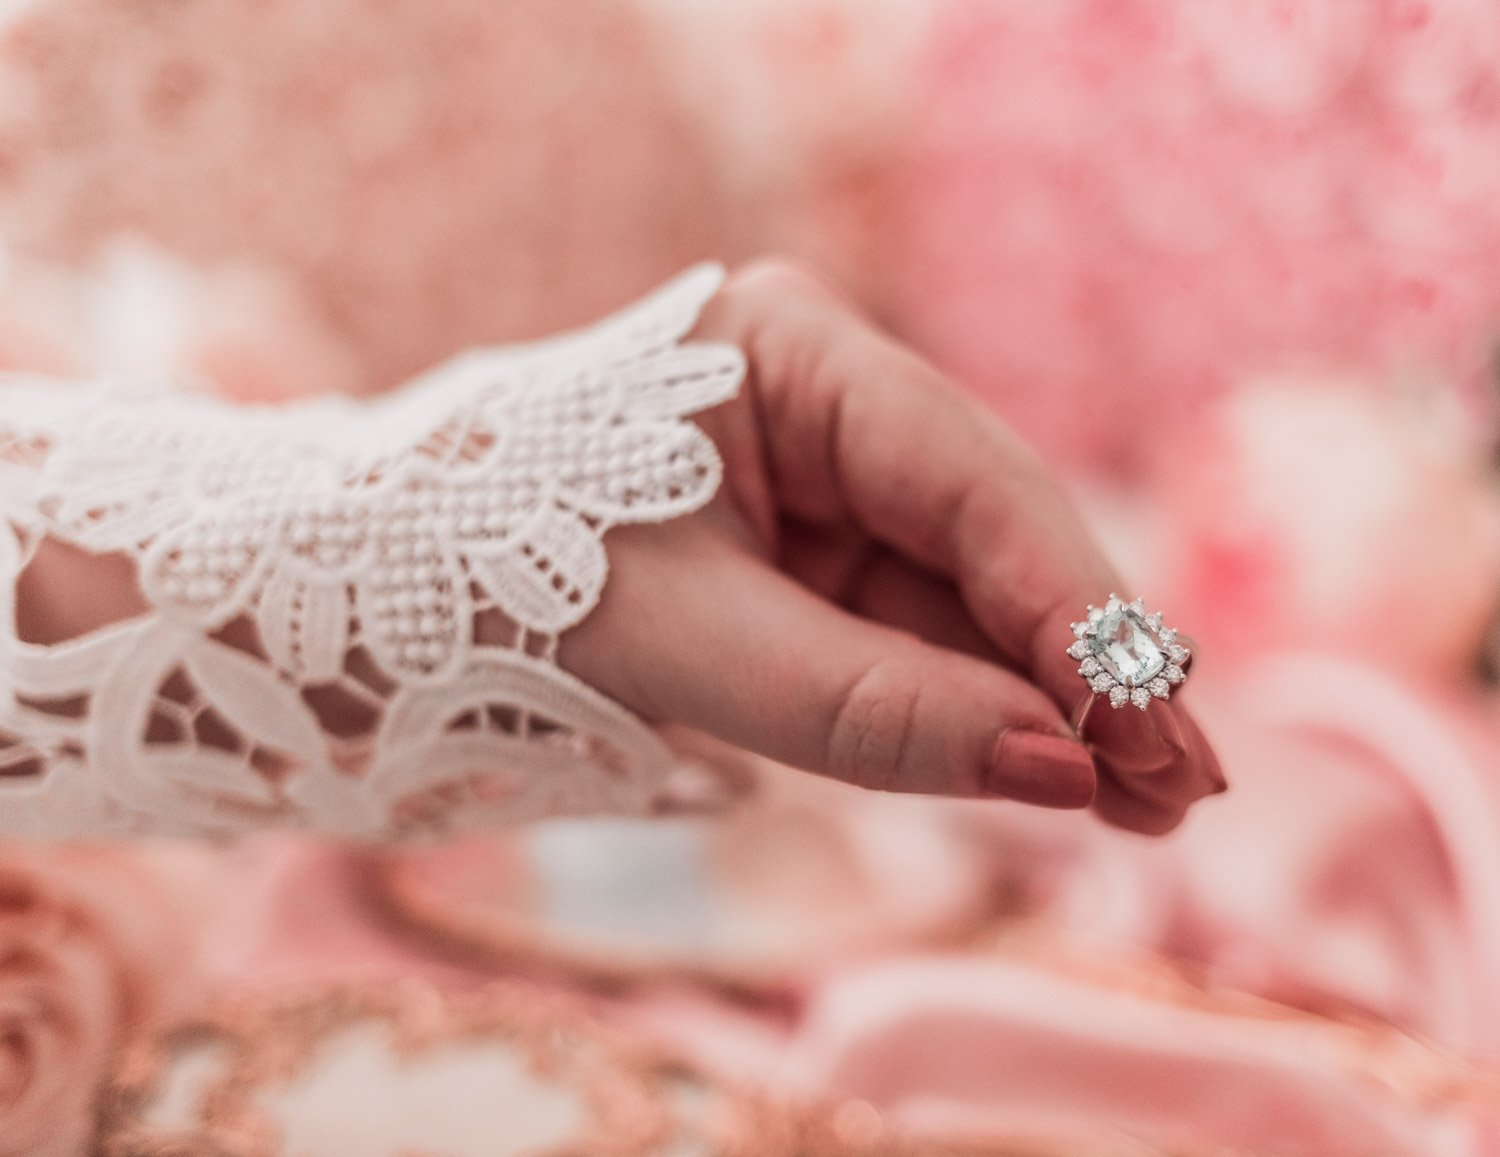 Fashion Blogger Elizabeth Hugen of Lizzie in Lace shares how to get free jewelry along with thoughts on this stunning Aquamarine ring with white gold